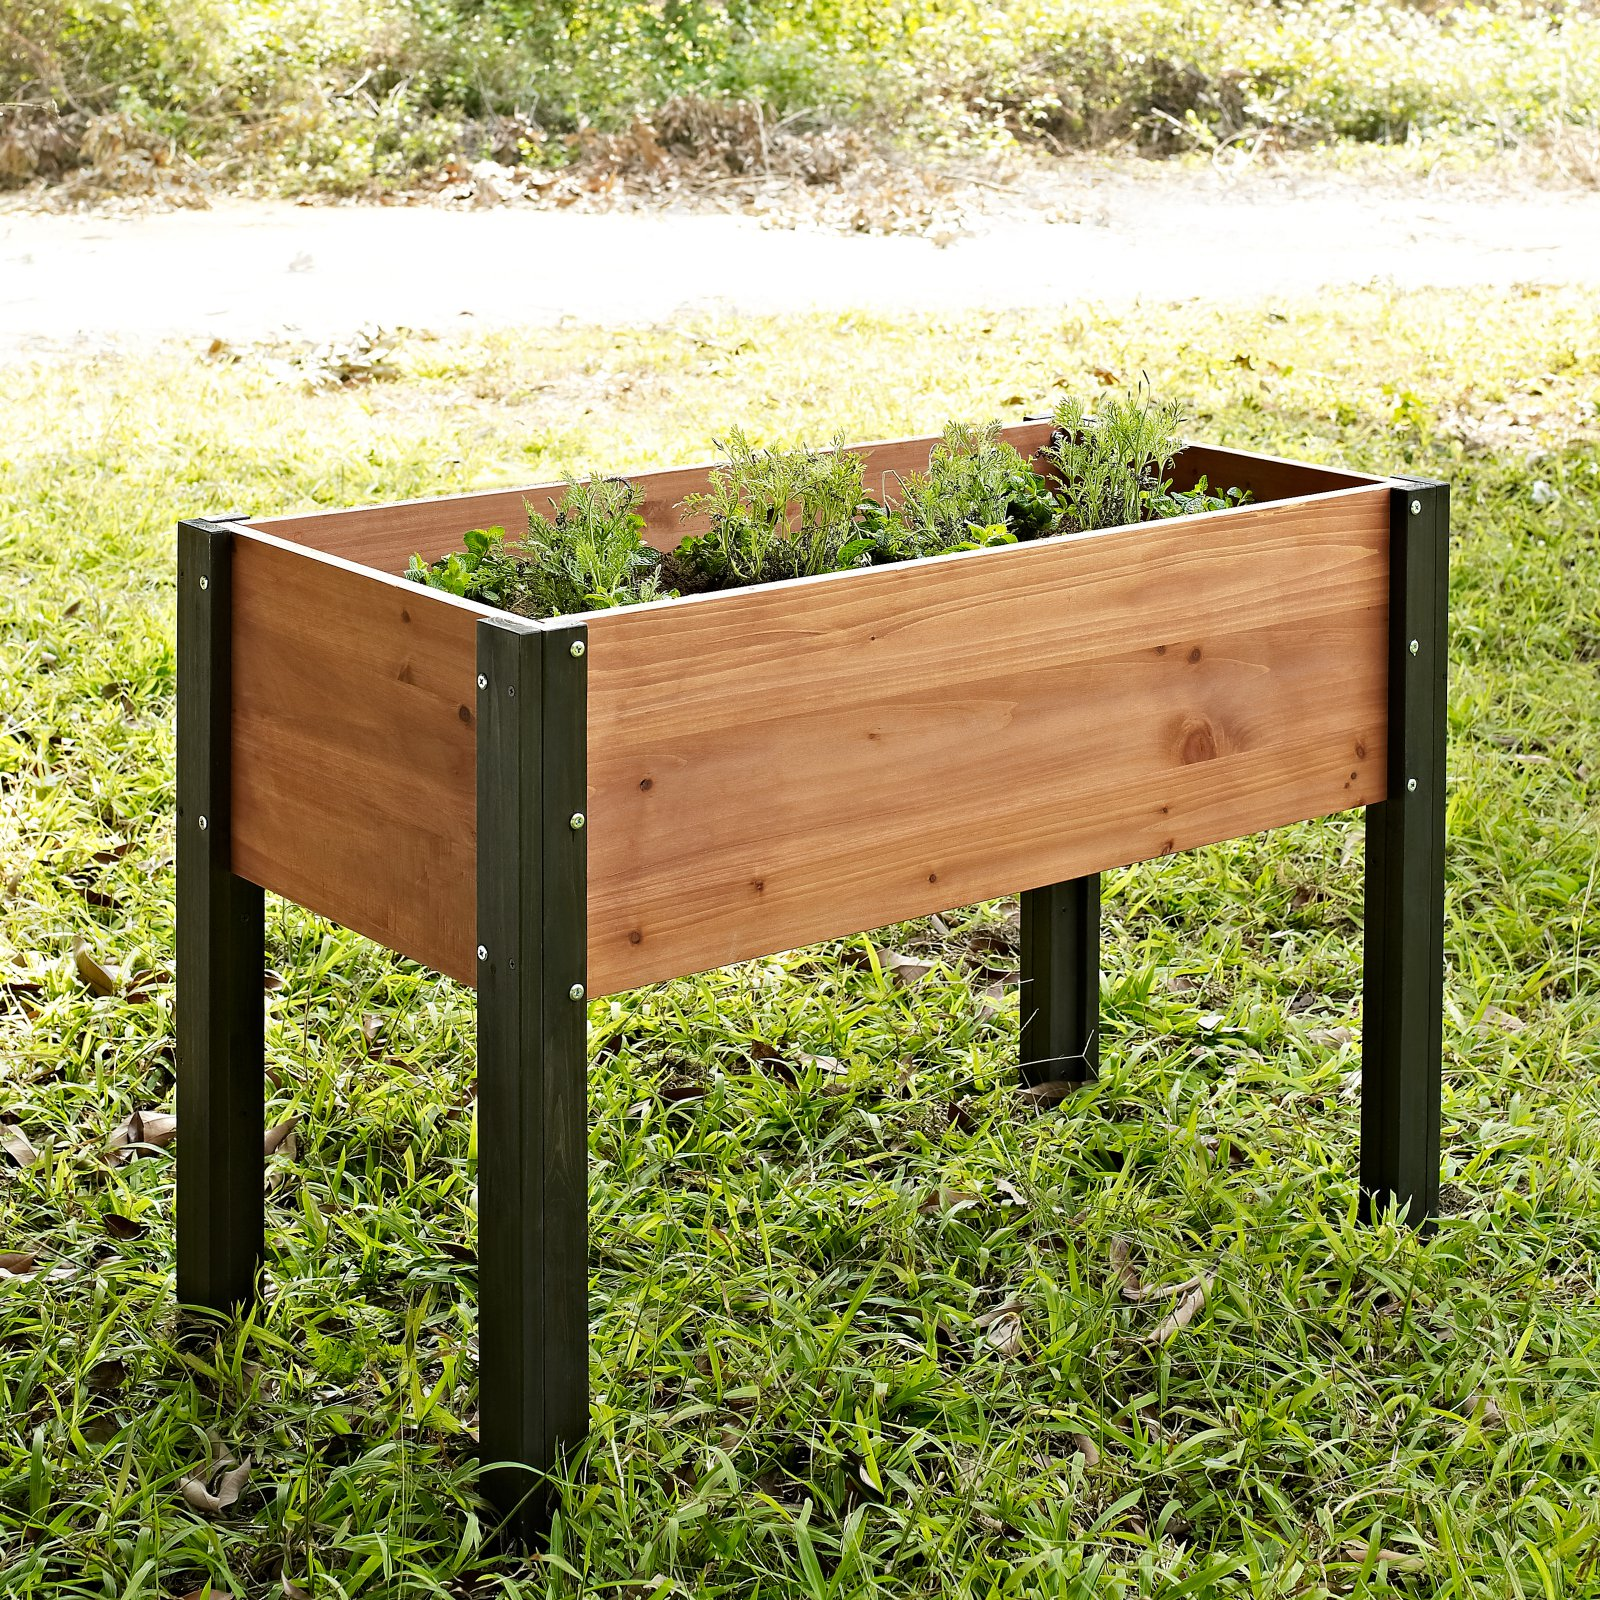 Coral Coast Bloomfield Wood Raised Garden Bed - 40L x 20D x 29H in.